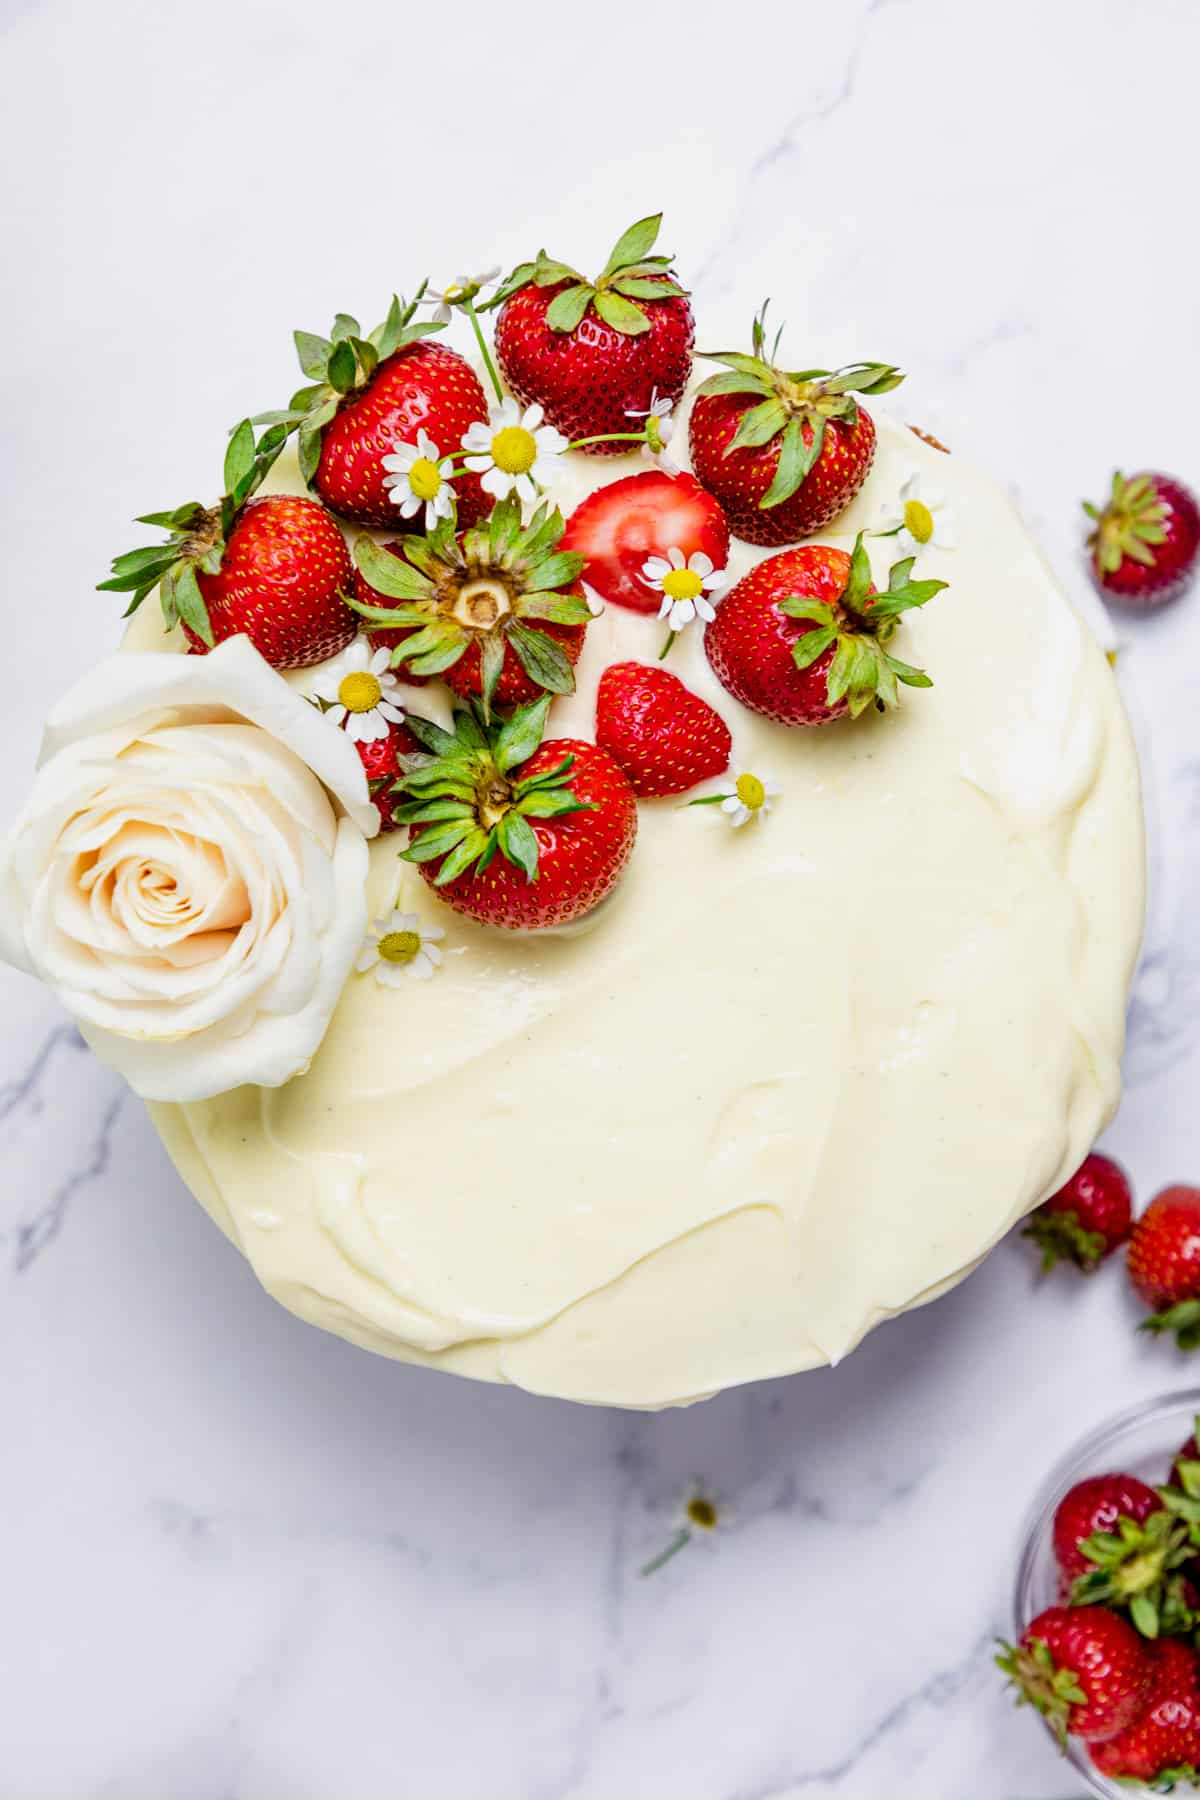 final strawberry jam cake decorated with a white rose, fresh strawberry and flowers.